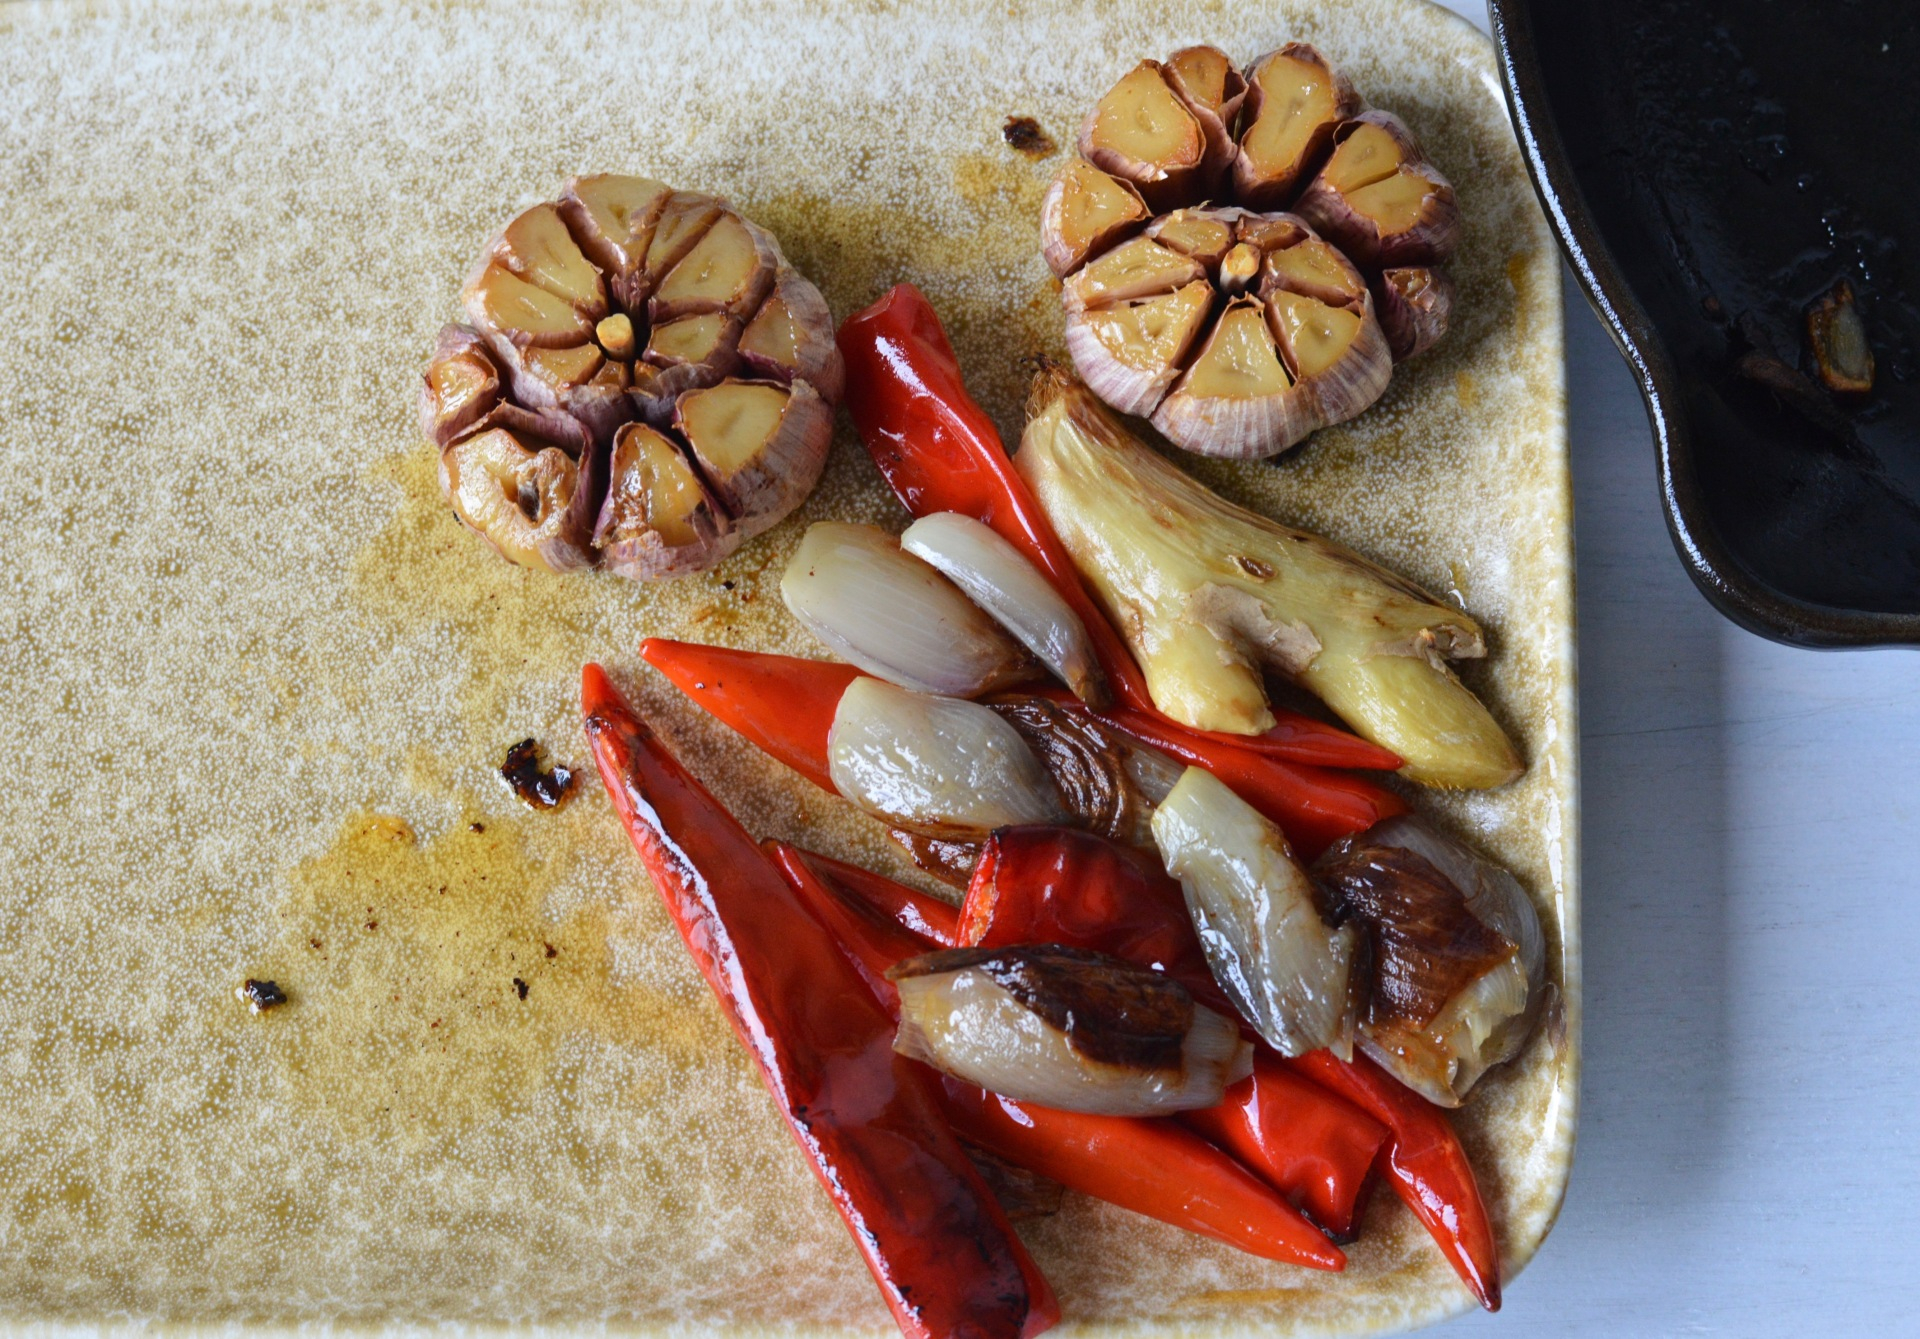 Roasted garlic, ginger, peppers and shallots